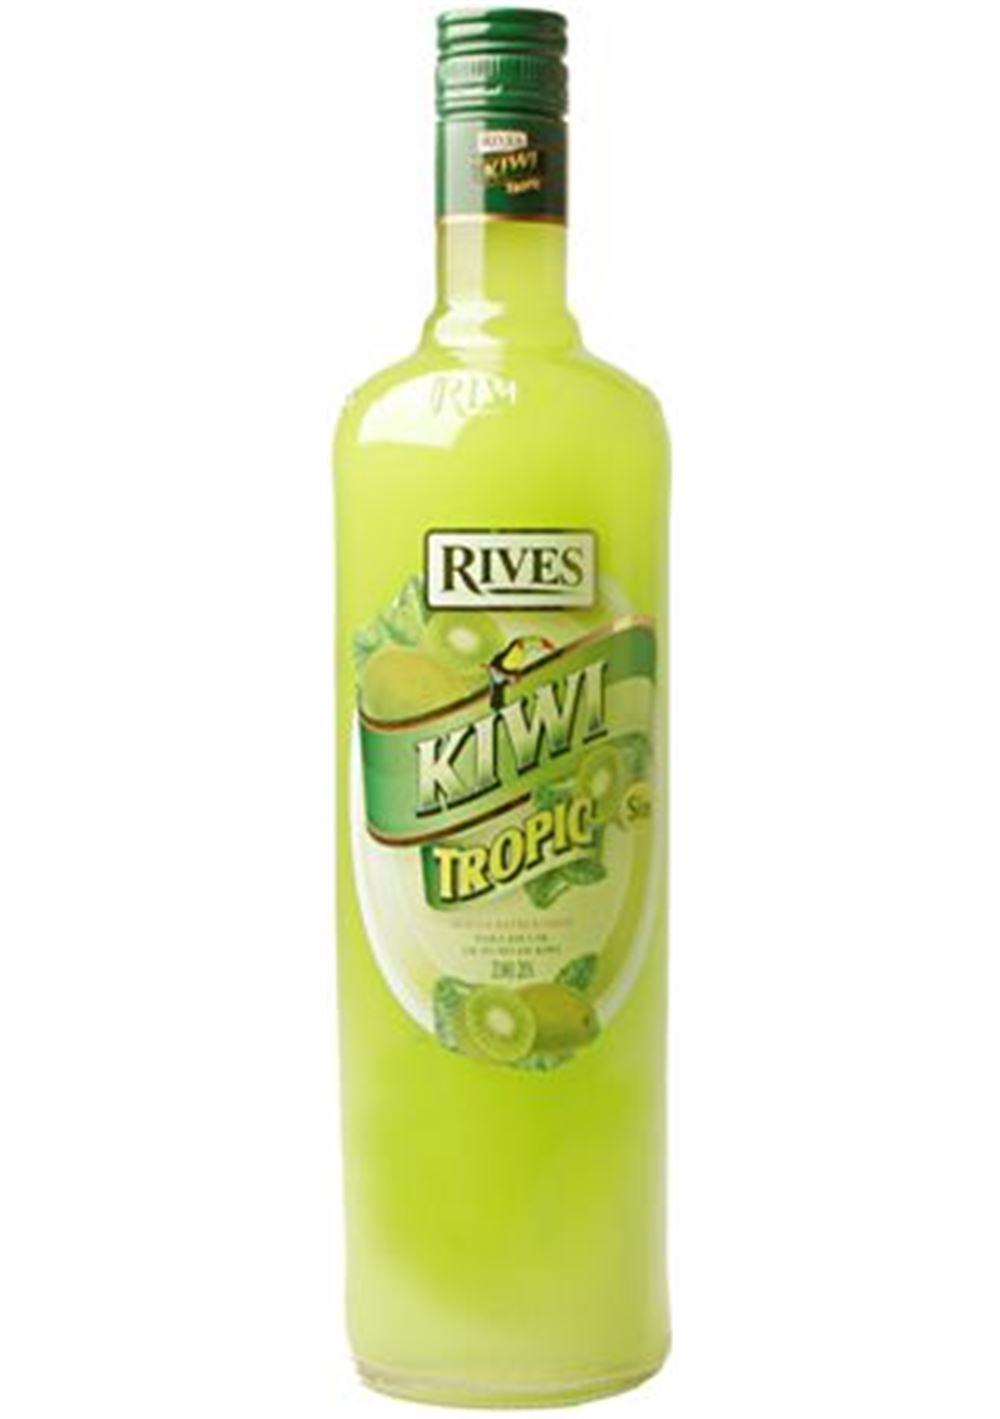 RIVES KIWI LITRO